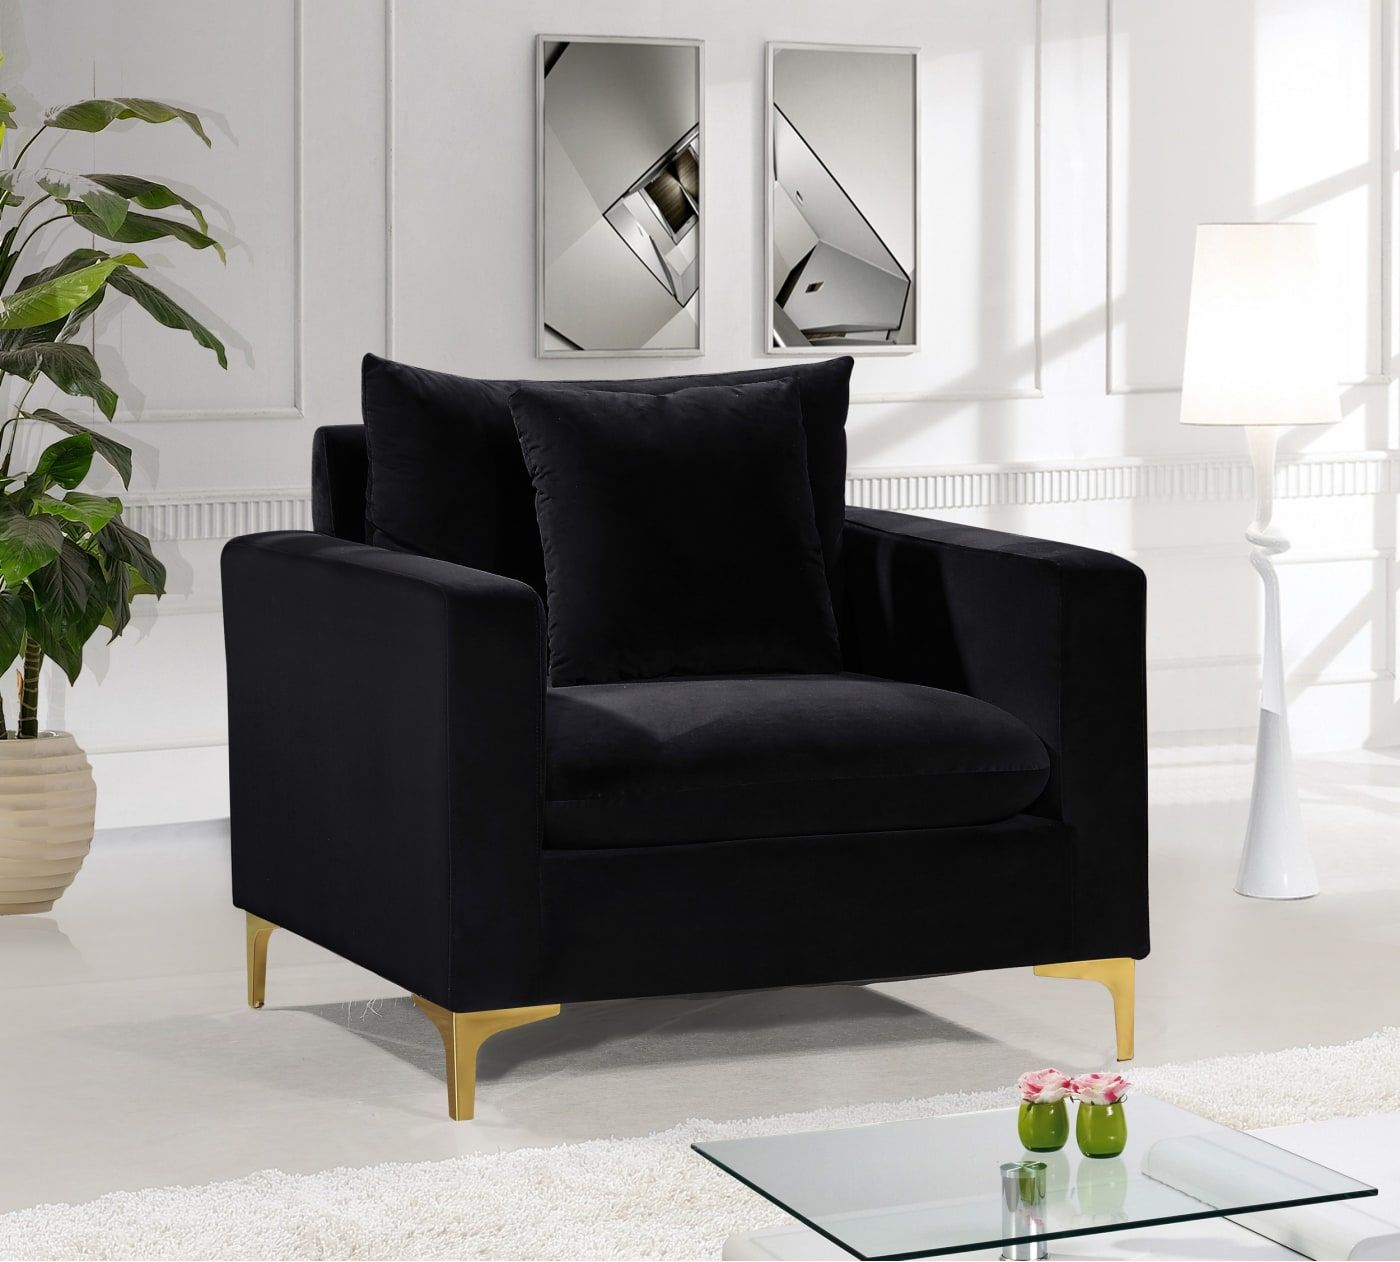 Meridian Naomi Black Velvet Chair 633black C Goedekers Com Black Velvet Chair Velvet Chair Black Living Room